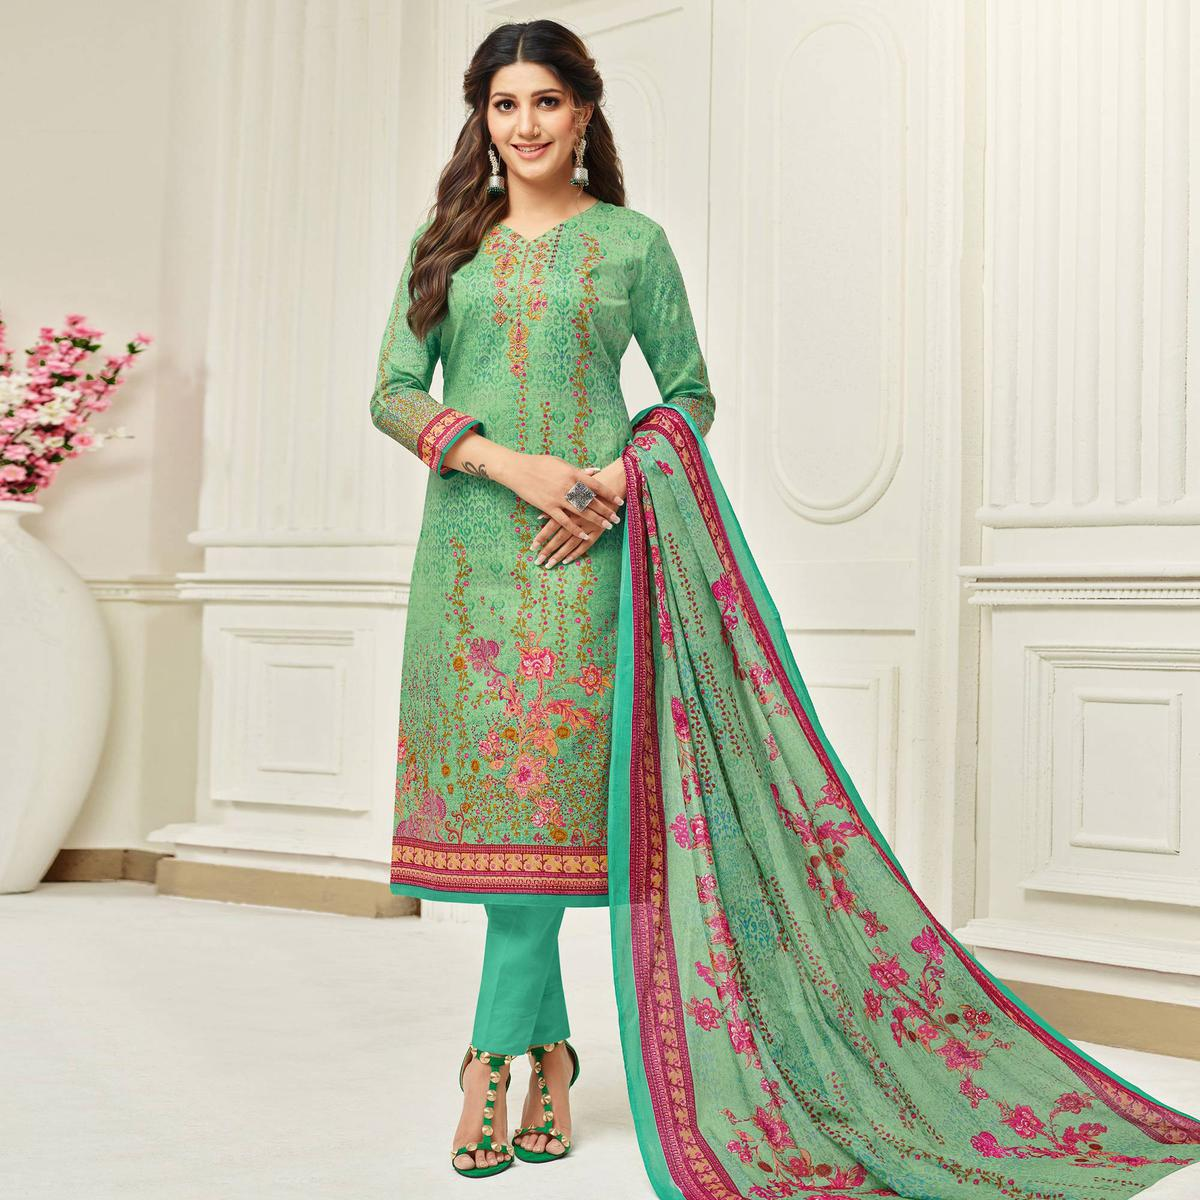 Ravishing Green Colored Casual Printed Cotton Dress Material